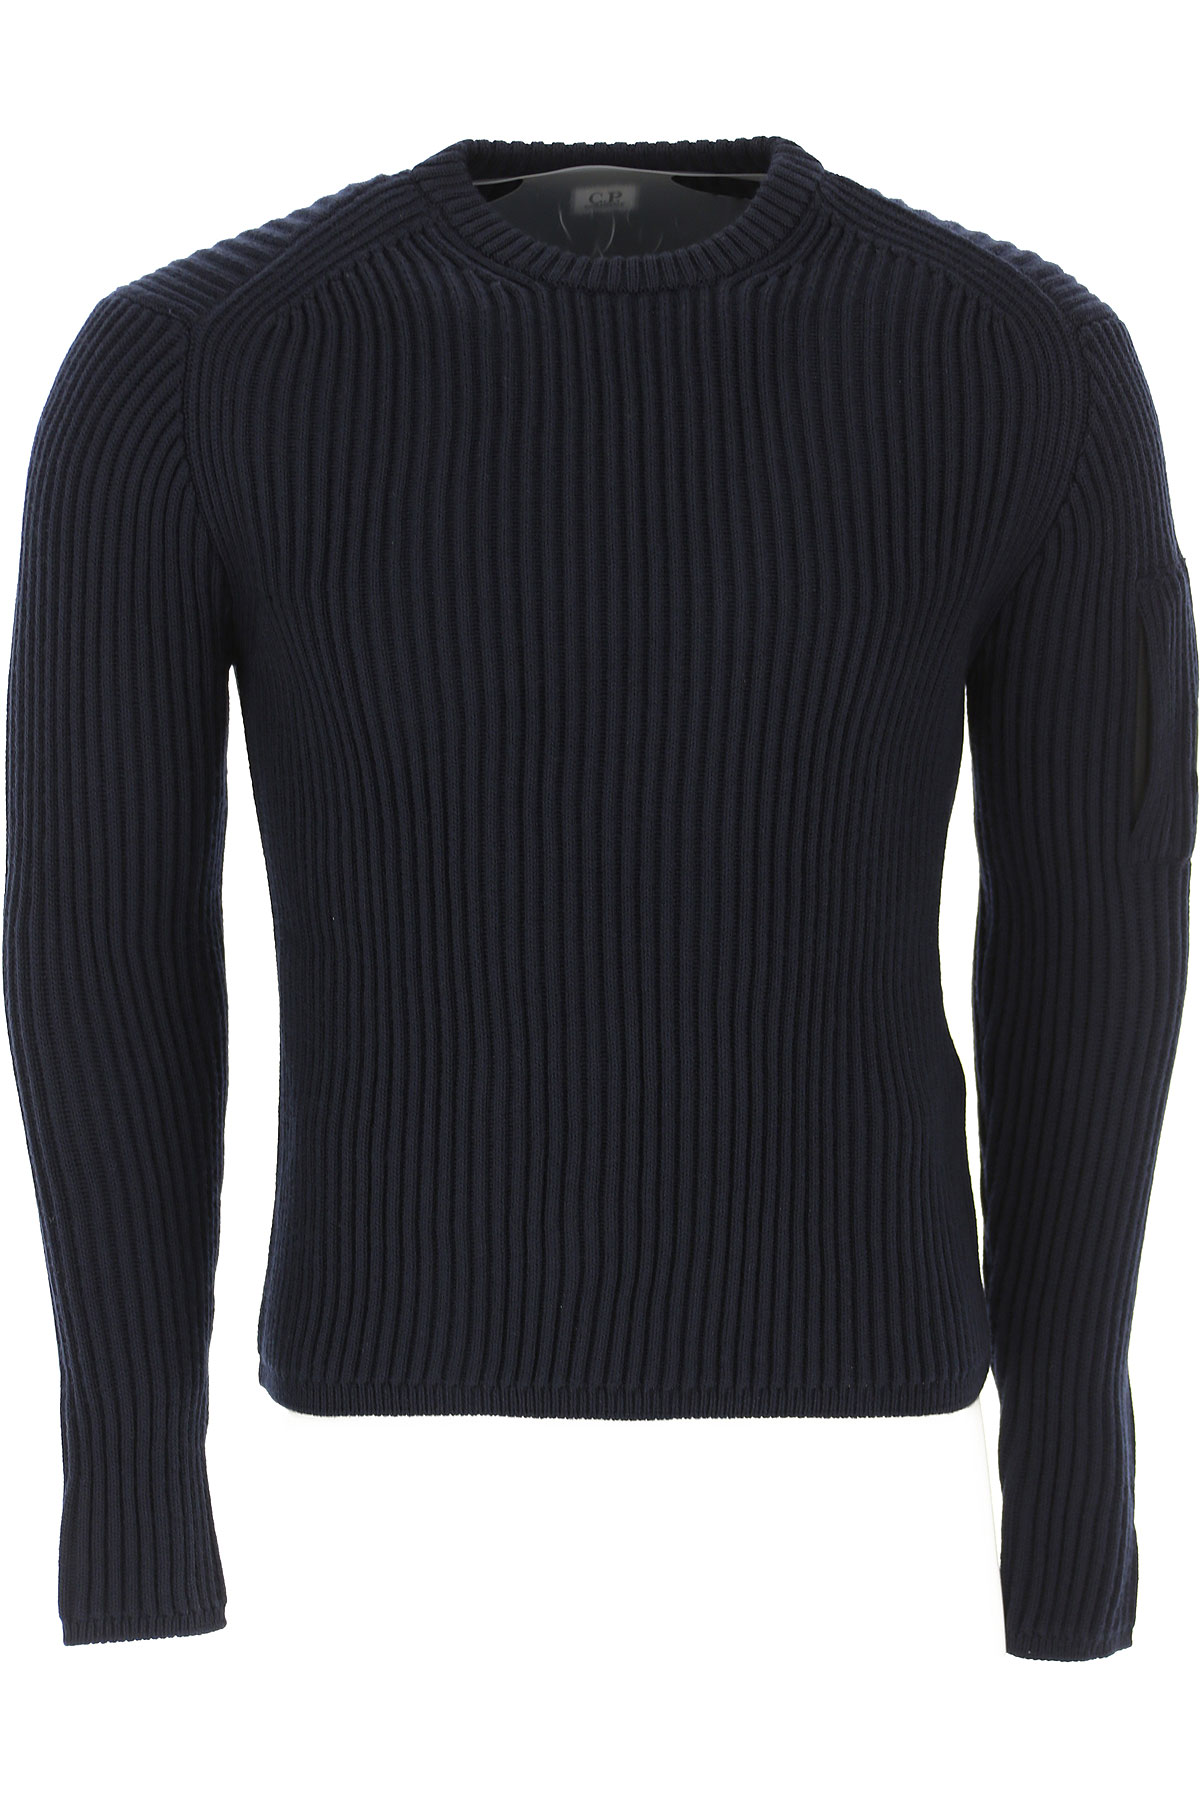 C.P. Company Sweater for Men Jumper On Sale, Dark Navy Blue, Wool, 2019, L M